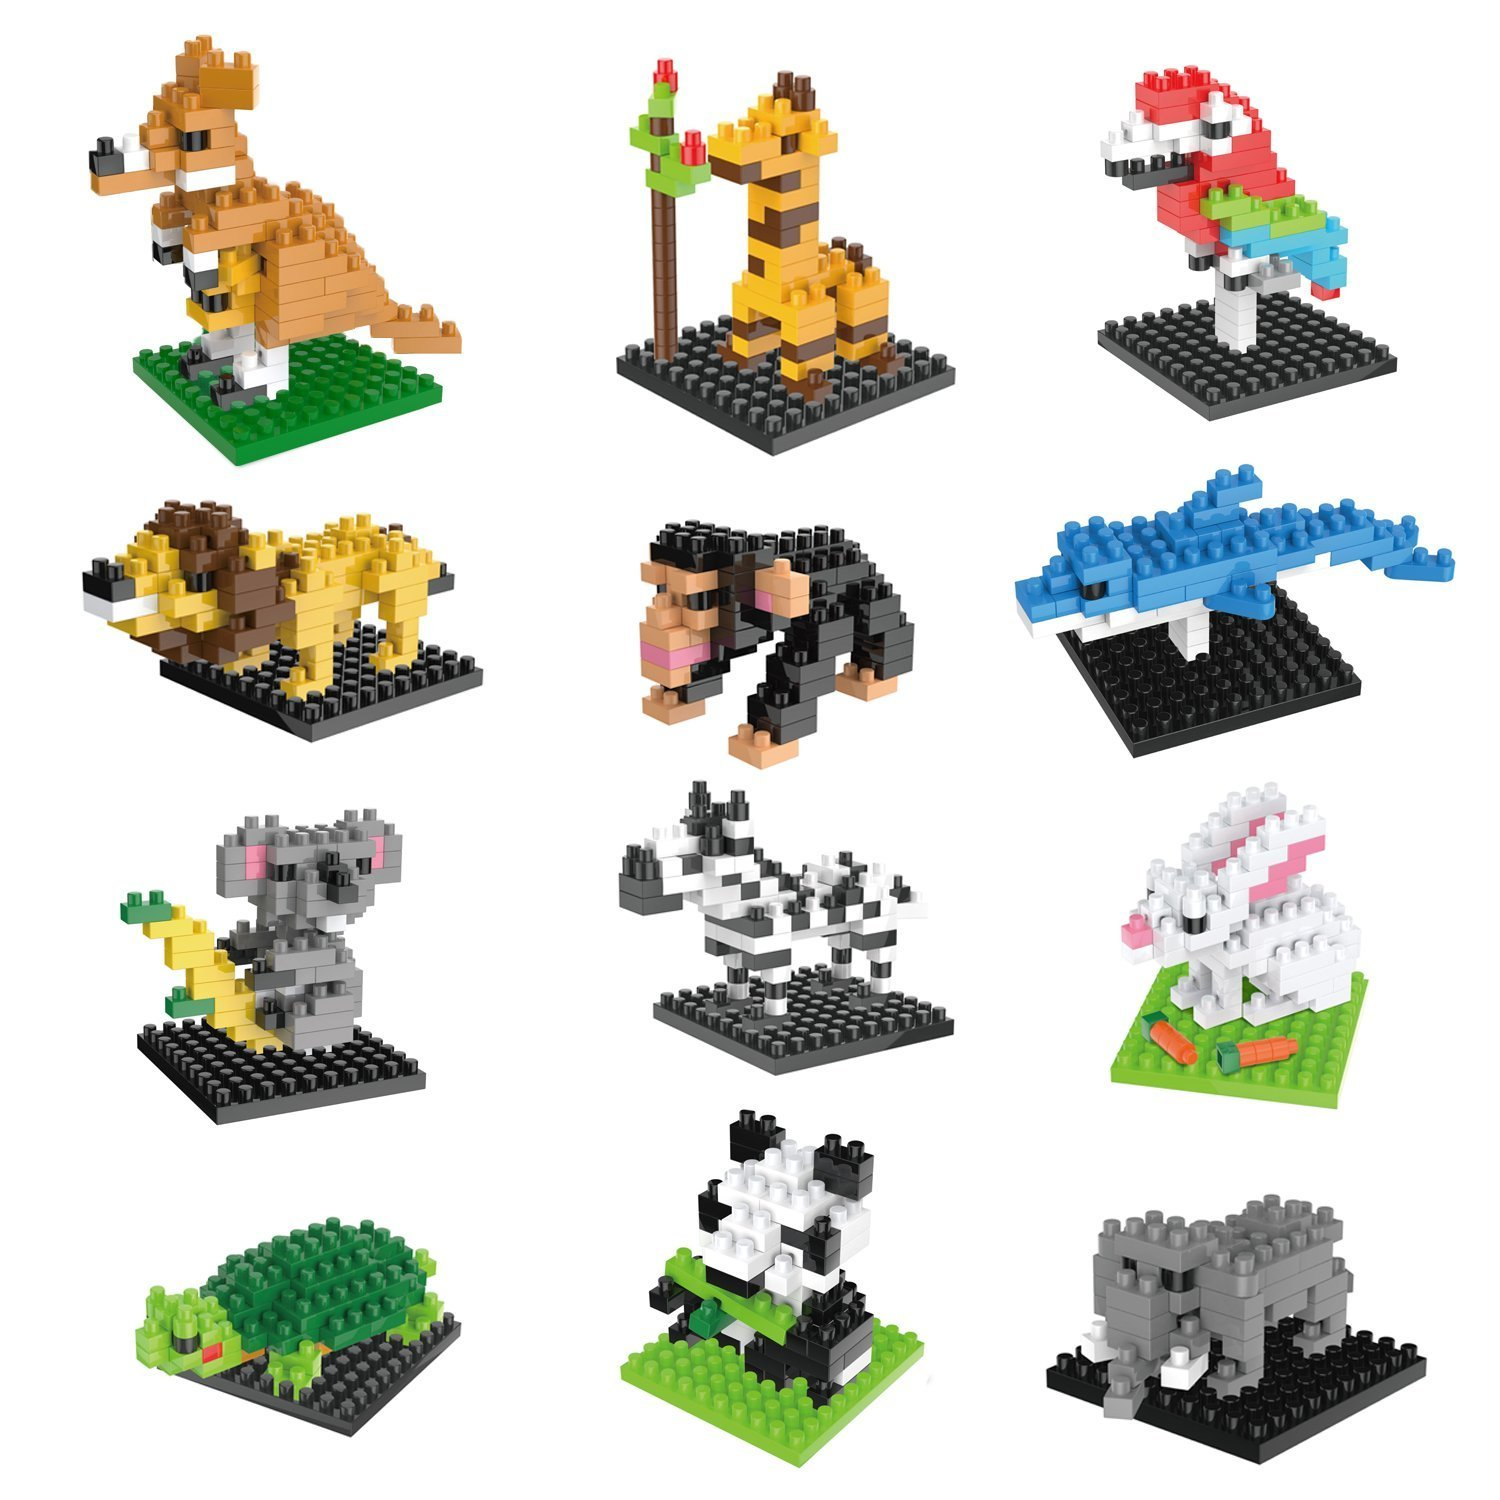 FUN LITTLE TOYS Mini Building Blocks Animals for Boys, Girls, Goodie Bags, Birthday Party Favors, Kids Prizes, Pinata, 12 Boxes